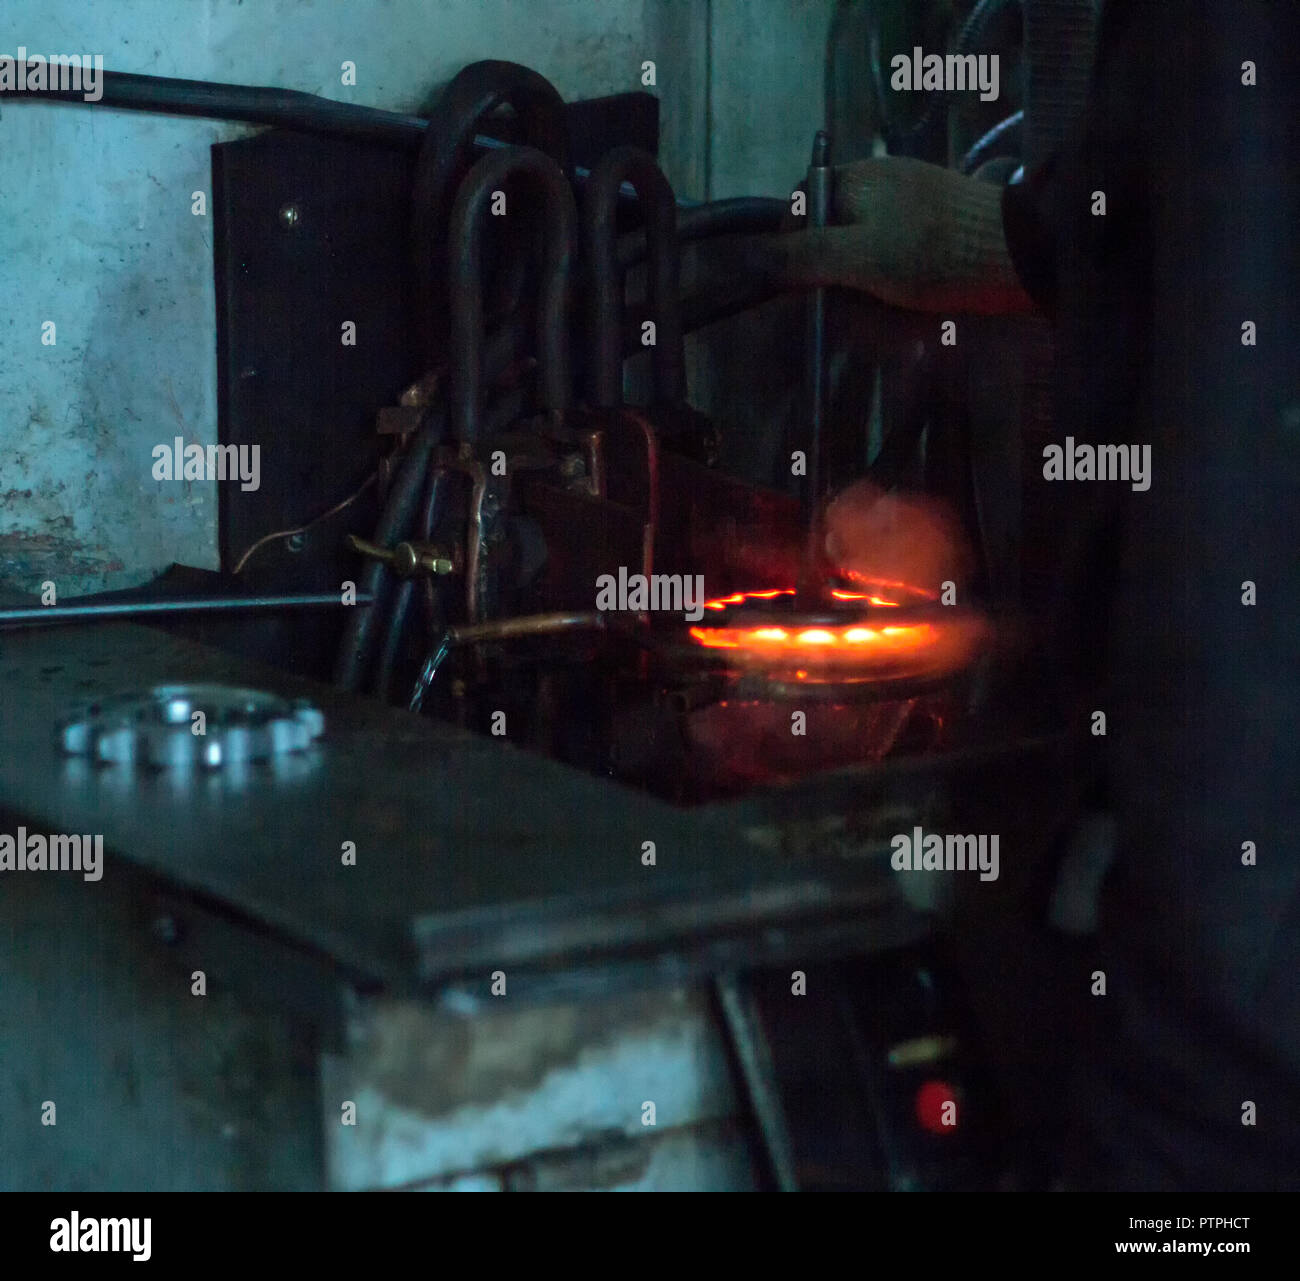 The worker makes hardening heat treatment of the metal gear on a special machine, close-up, hardening of metal, hardening - Stock Image